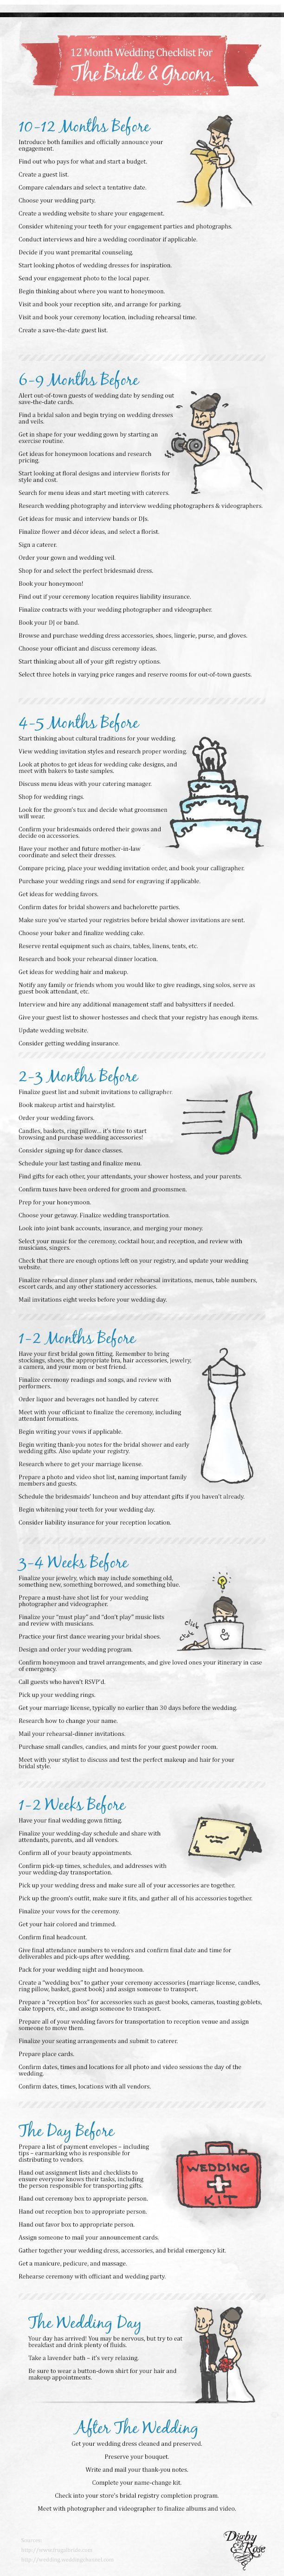 12 Month Wedding Checklist... may be helpful? except my timeline is not a year its 6 monthsss: